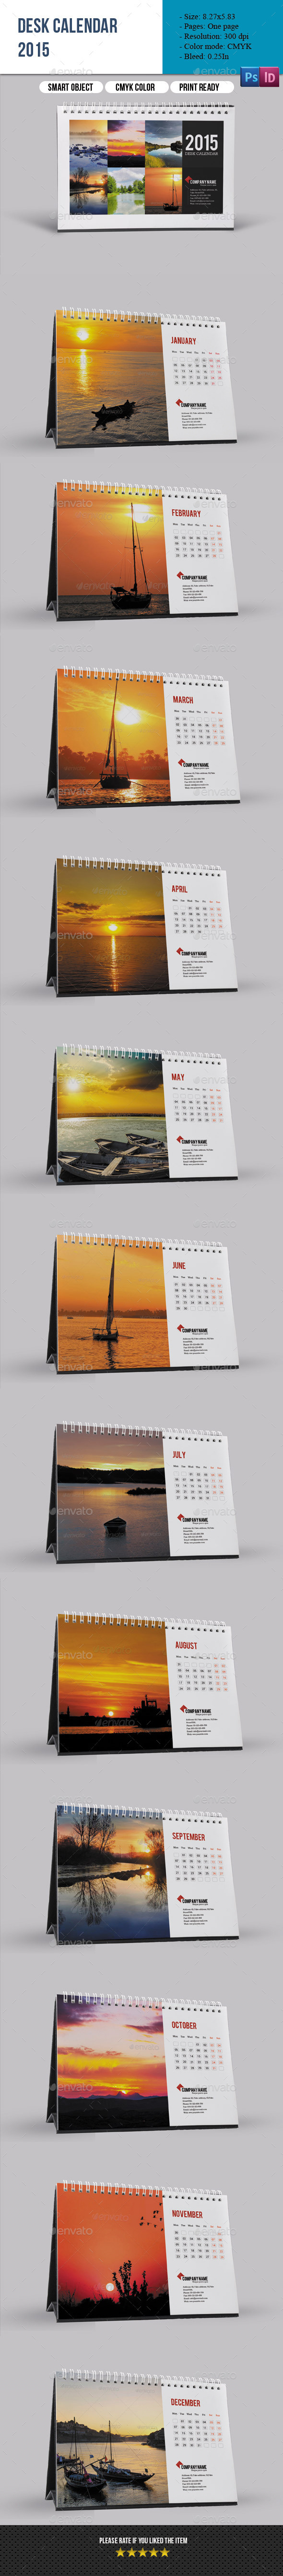 Desk Calendar 2015 - Calendars Stationery